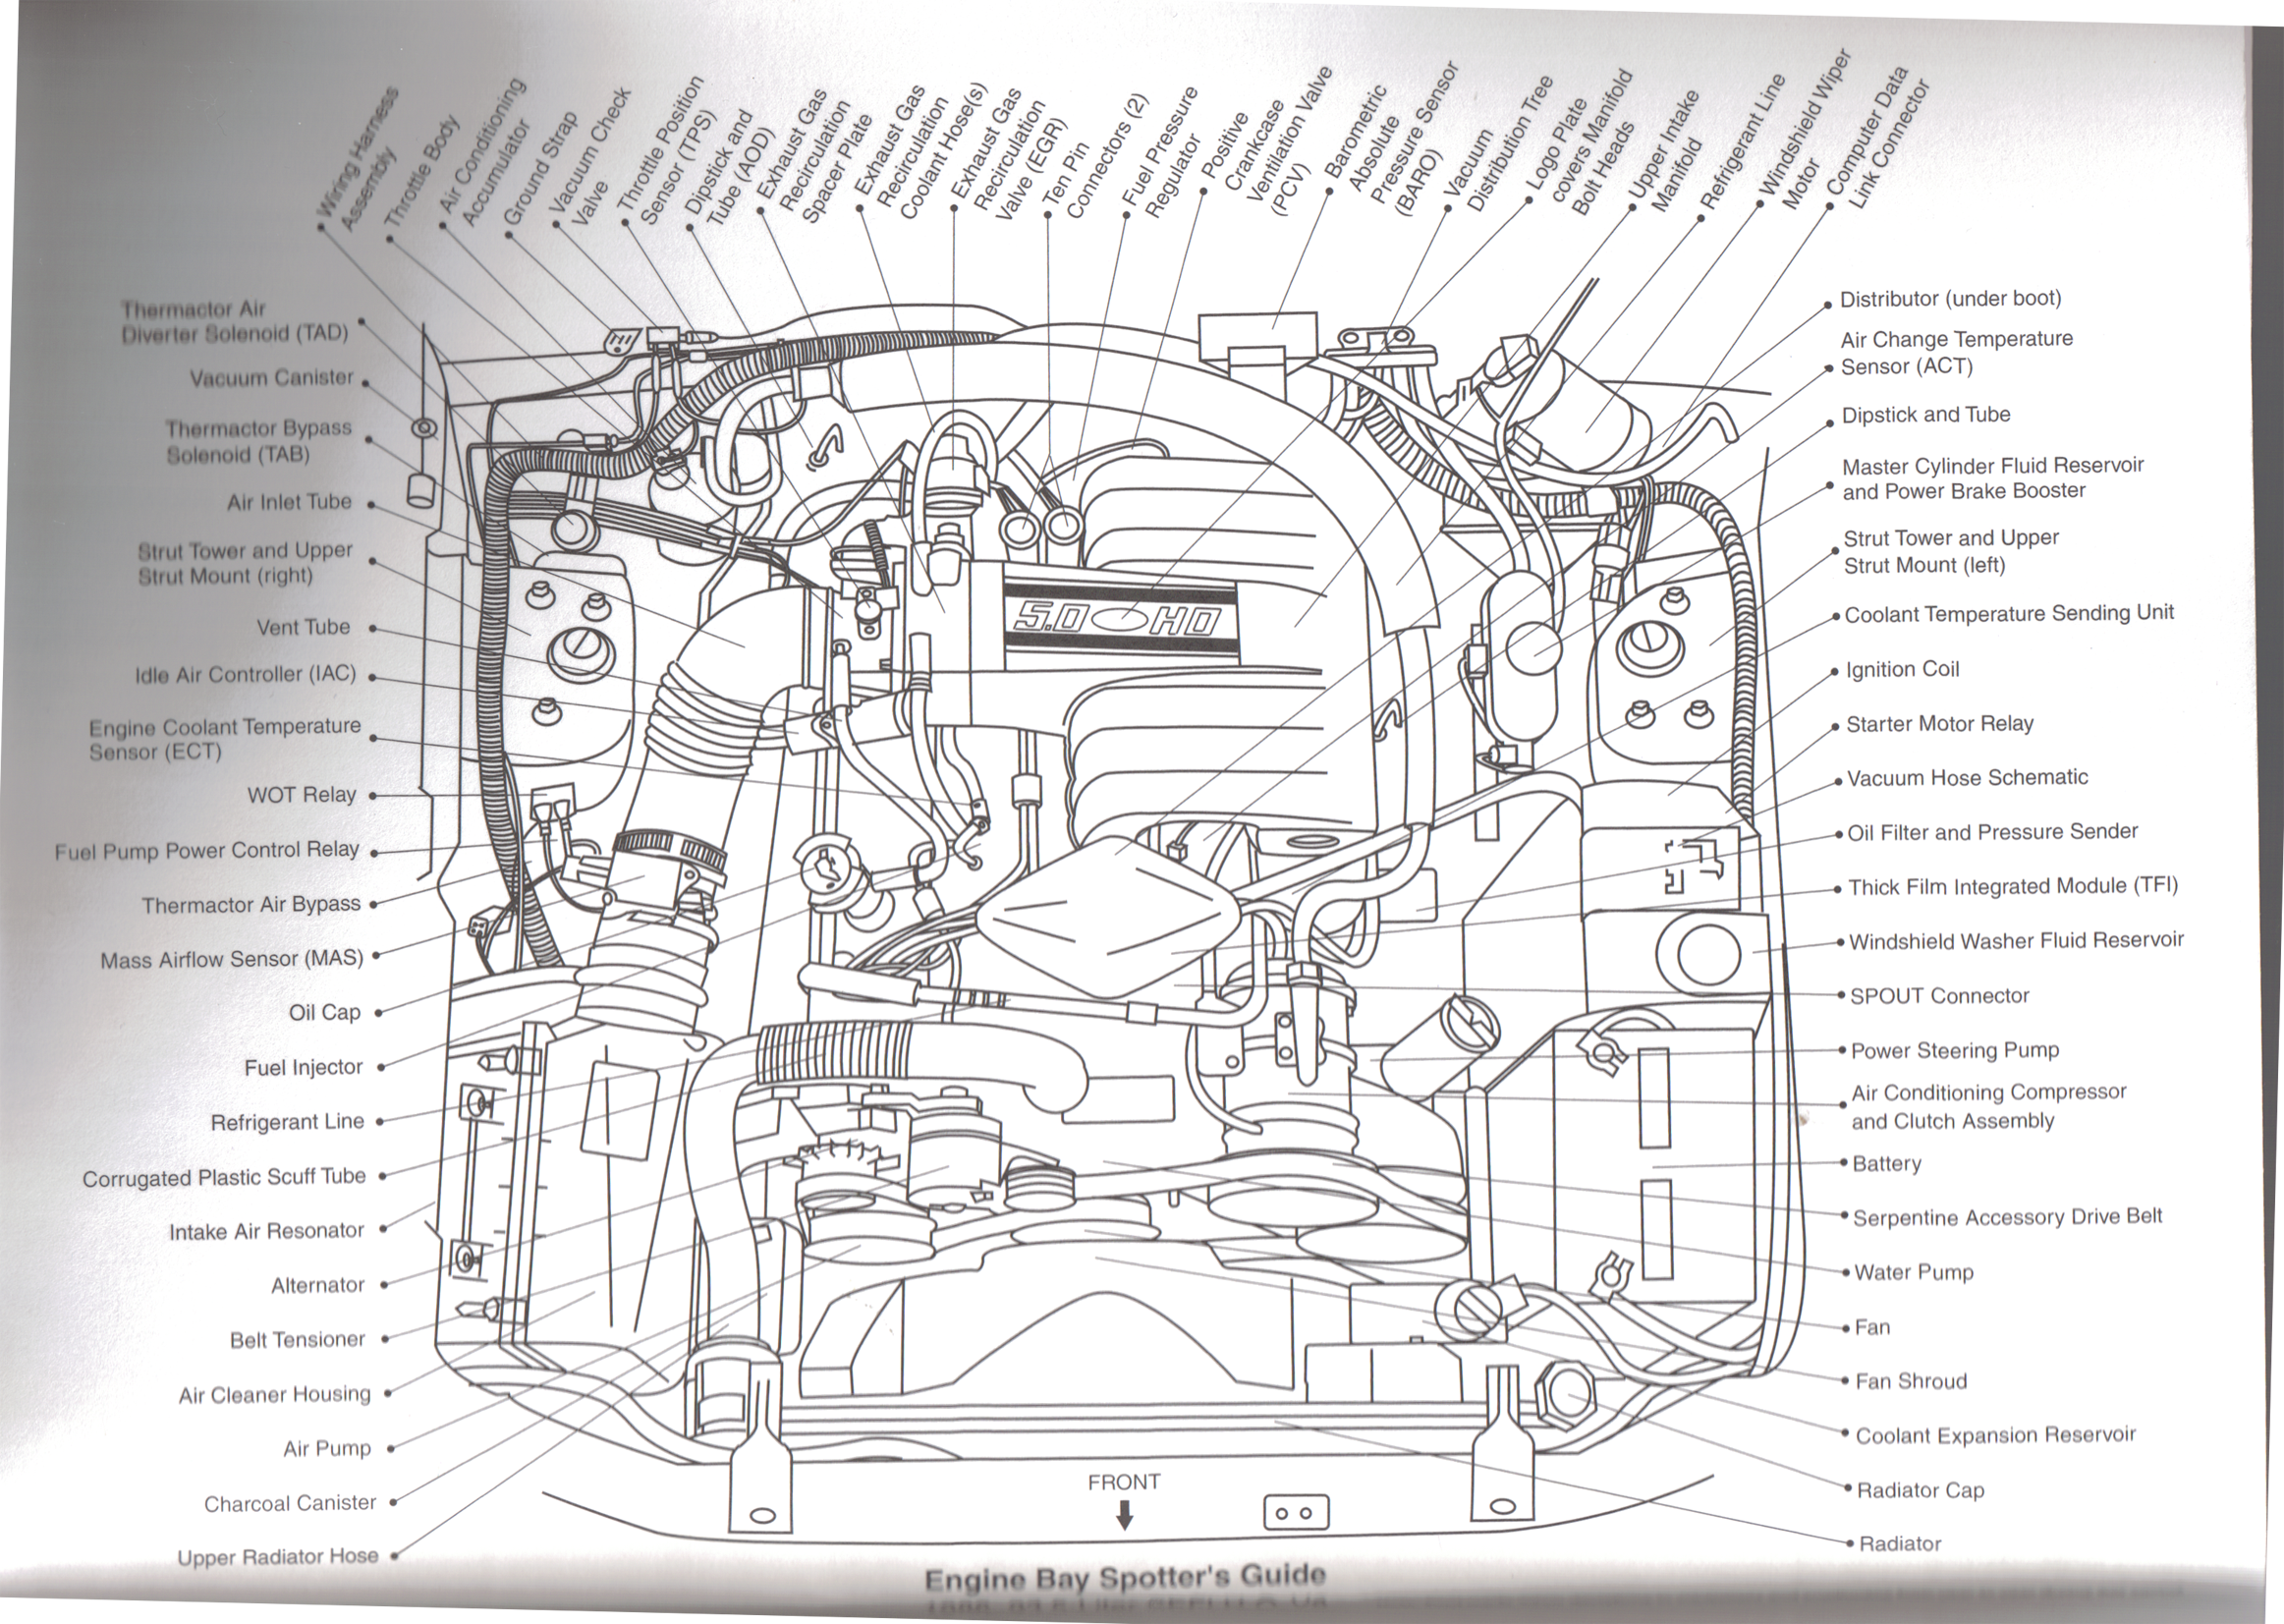 1986 Ford Mustang Lx Engine Diagram Schematics Wiring Diagrams Honda Civic Firing Order Everything You Need To Know About 1979 1993 Foxbody Mustangs Rh Americanmuscle Com Convertible